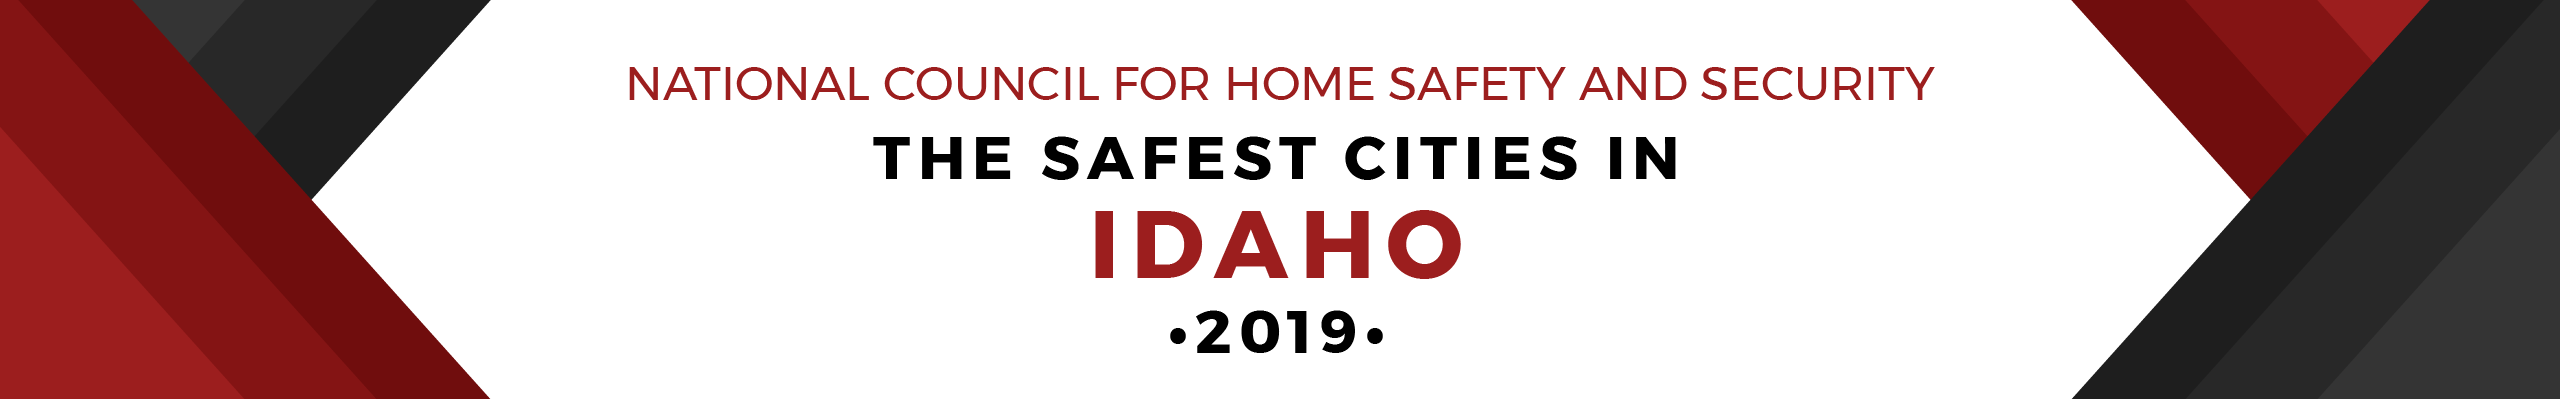 Safest Cities Idaho - header